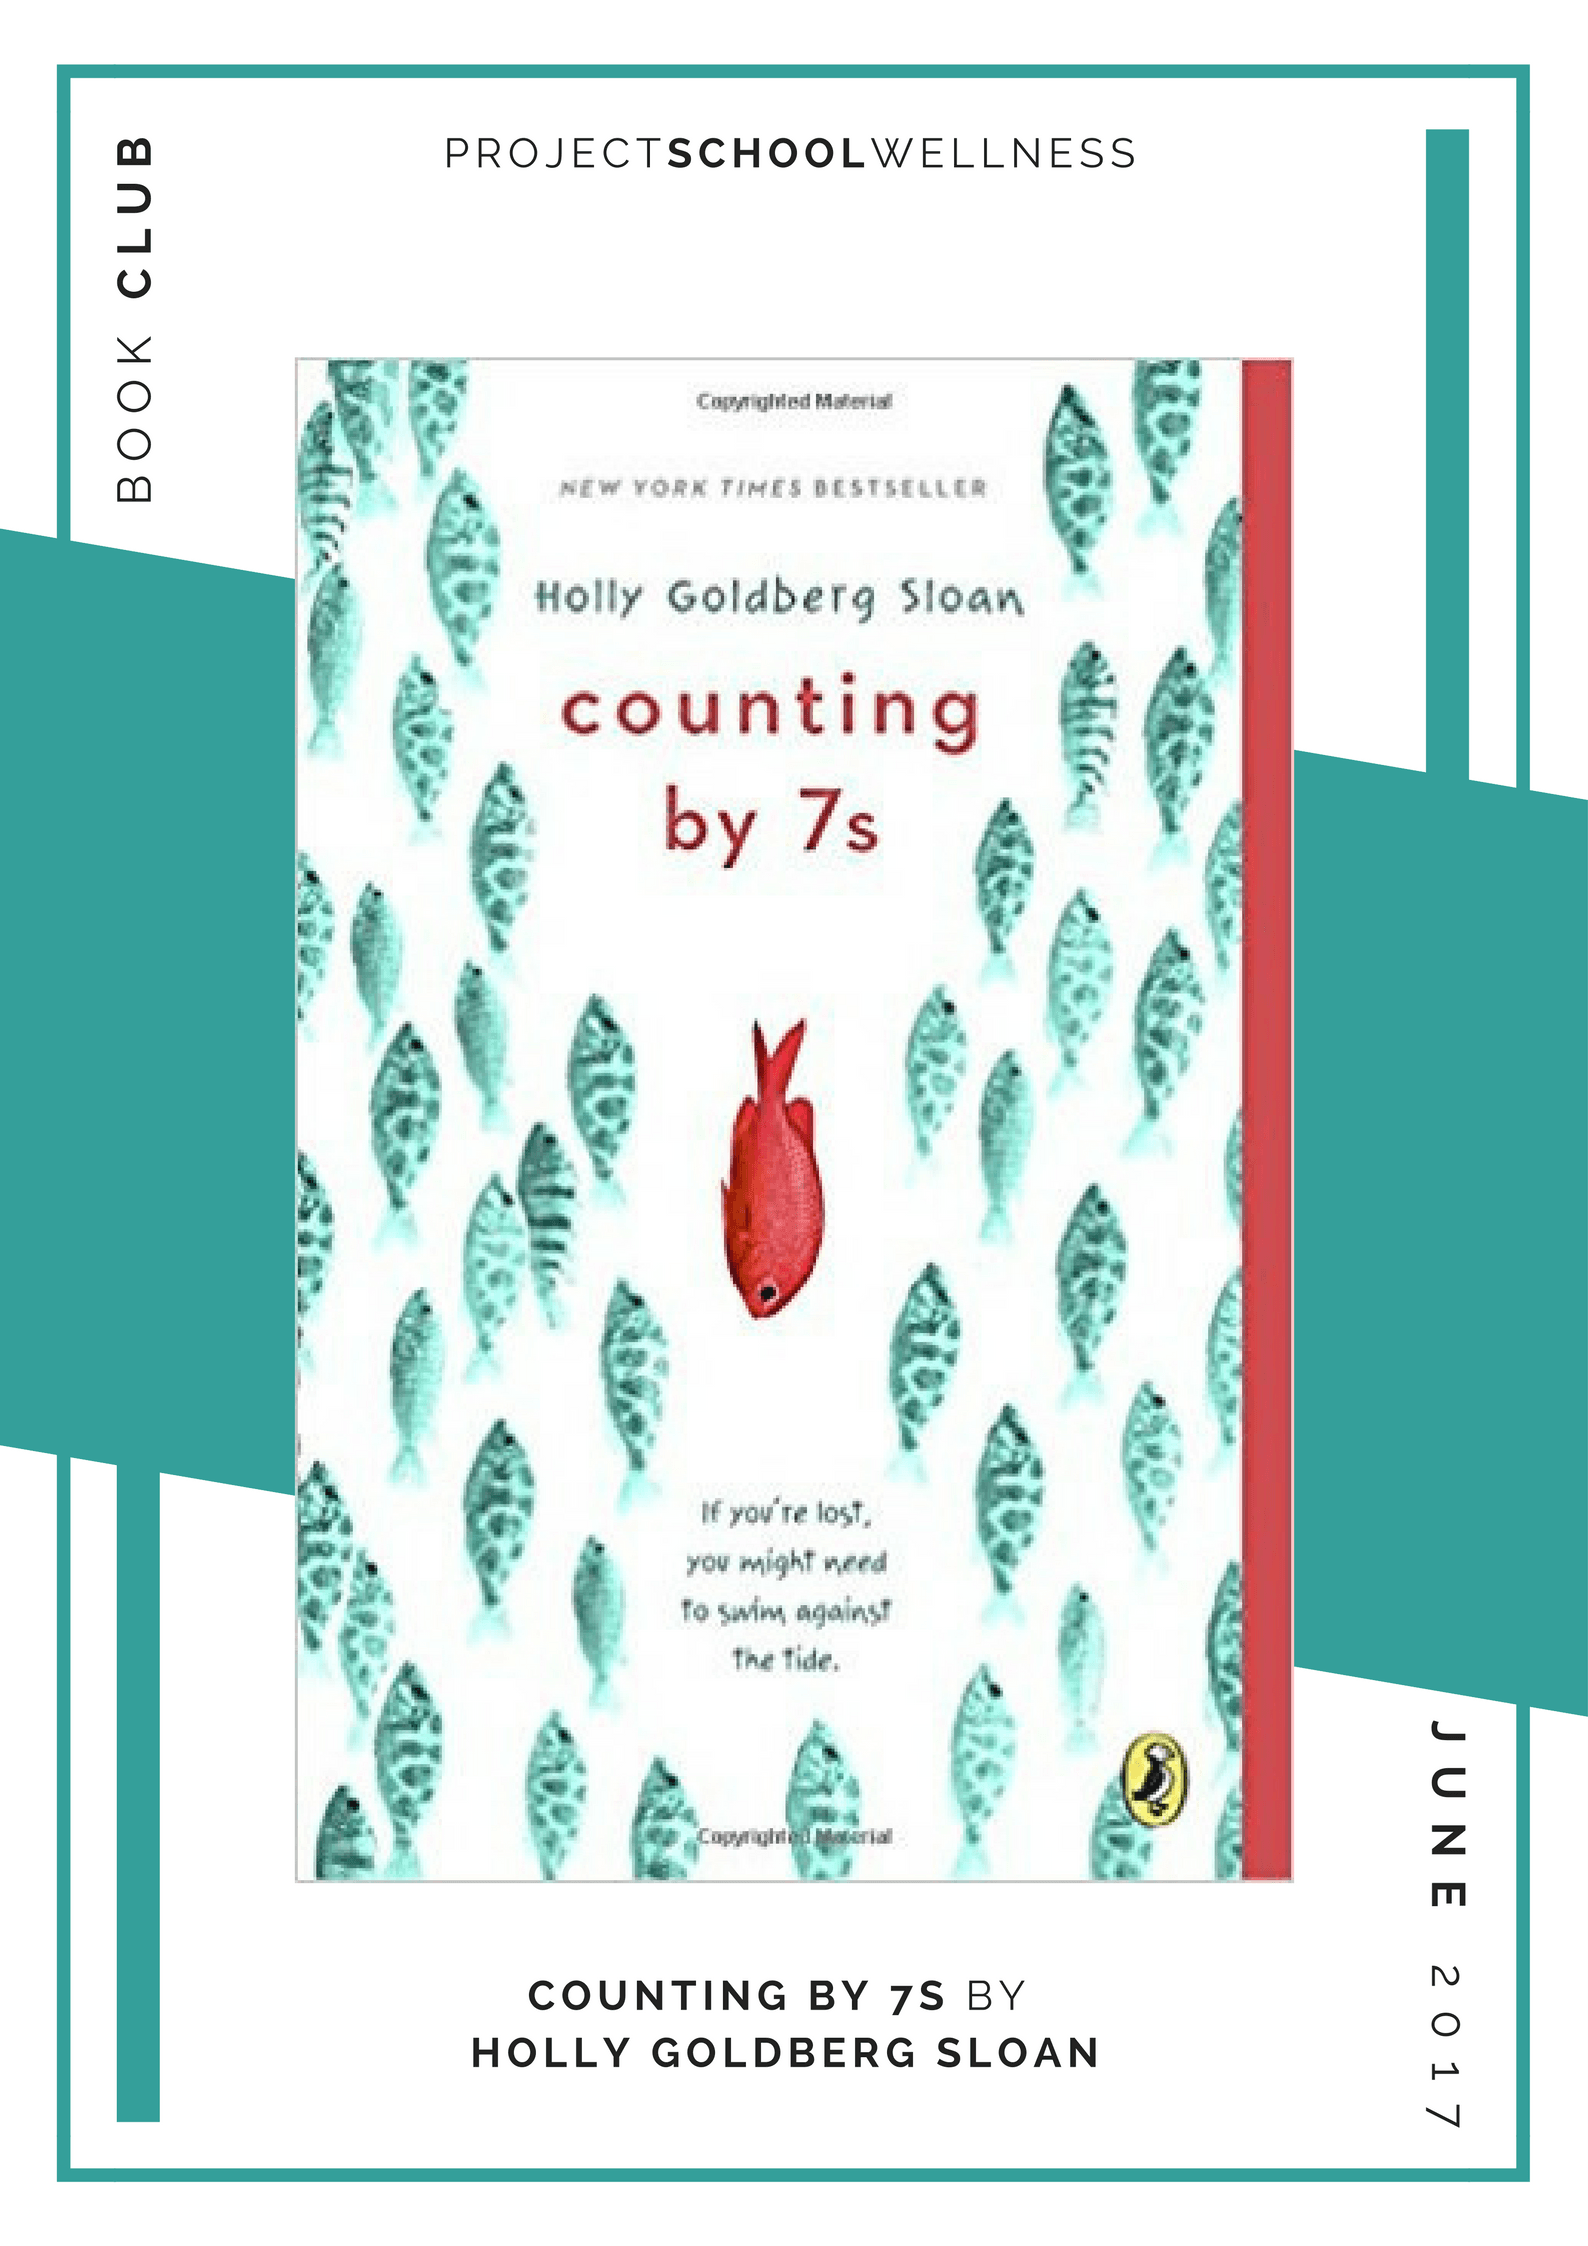 Project School Wellness book club. A list of must read books for teachers and parents! Each month Janelle from Project School Wellness her most current reads. Learn about dealing with life and learning how to fit in and find family with Holly Goldberg Sloan's Counting by 7s.